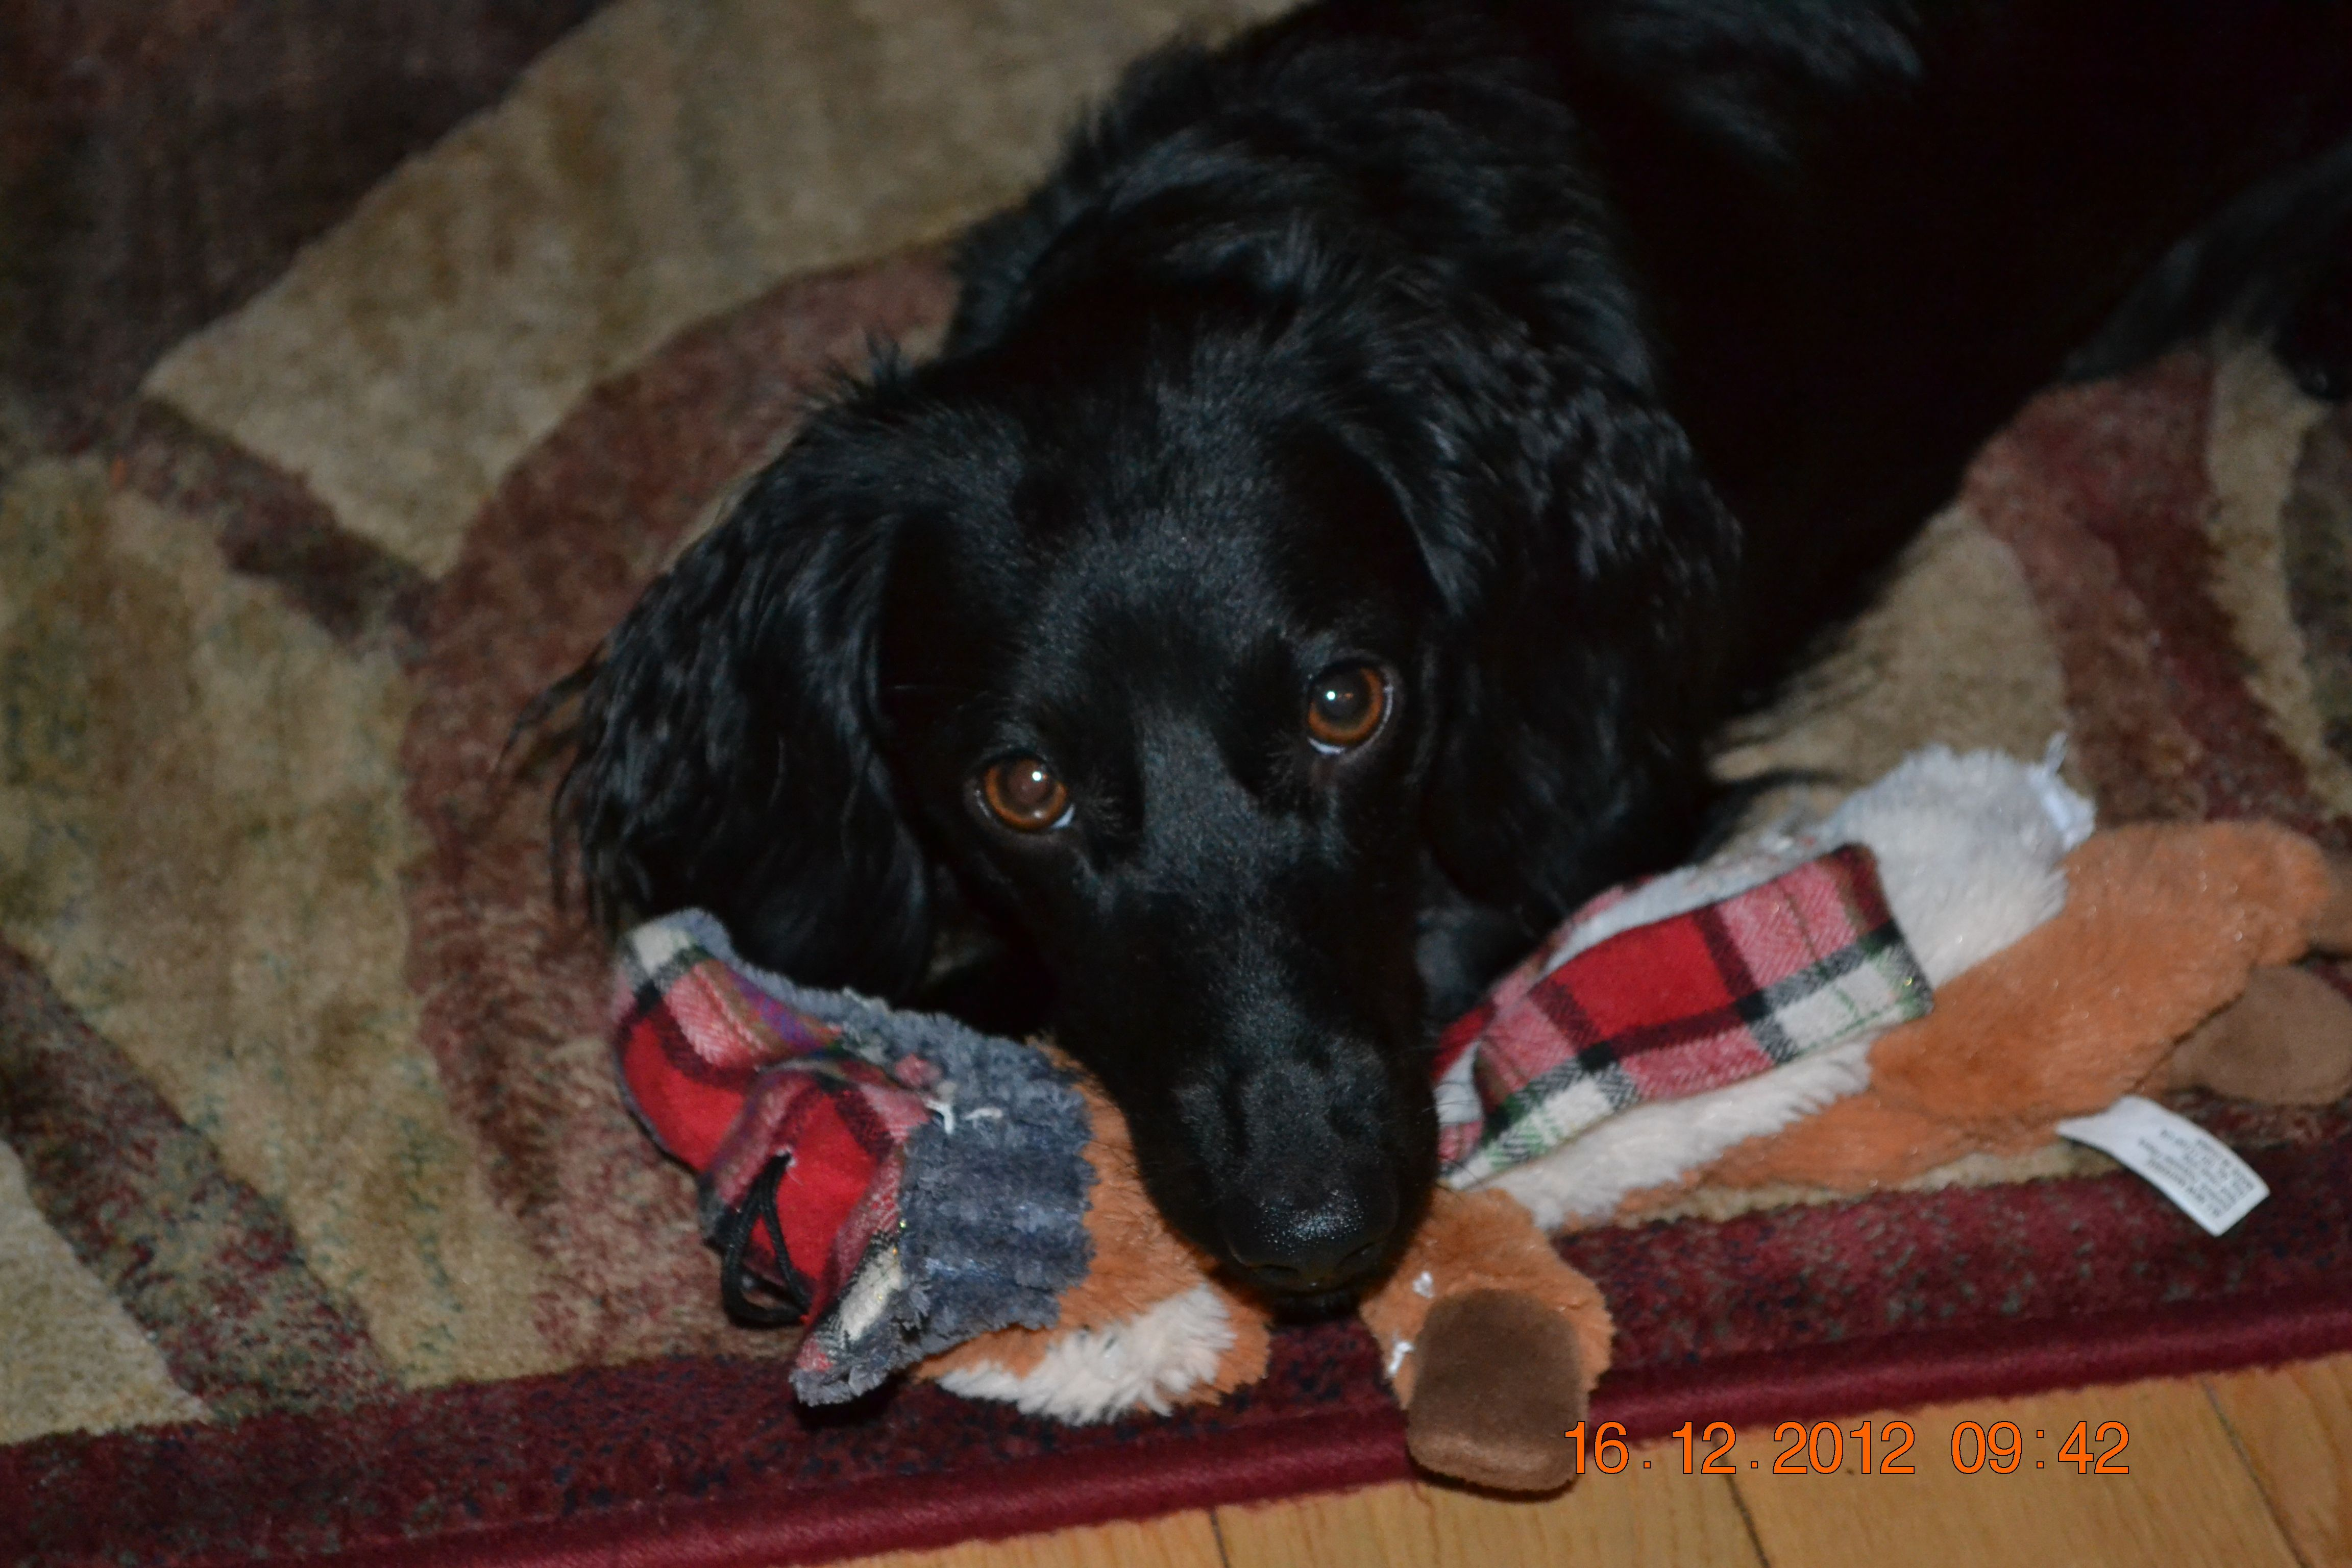 1 Year Old Black Long Haired Dachshund Very Rare Have You Ever